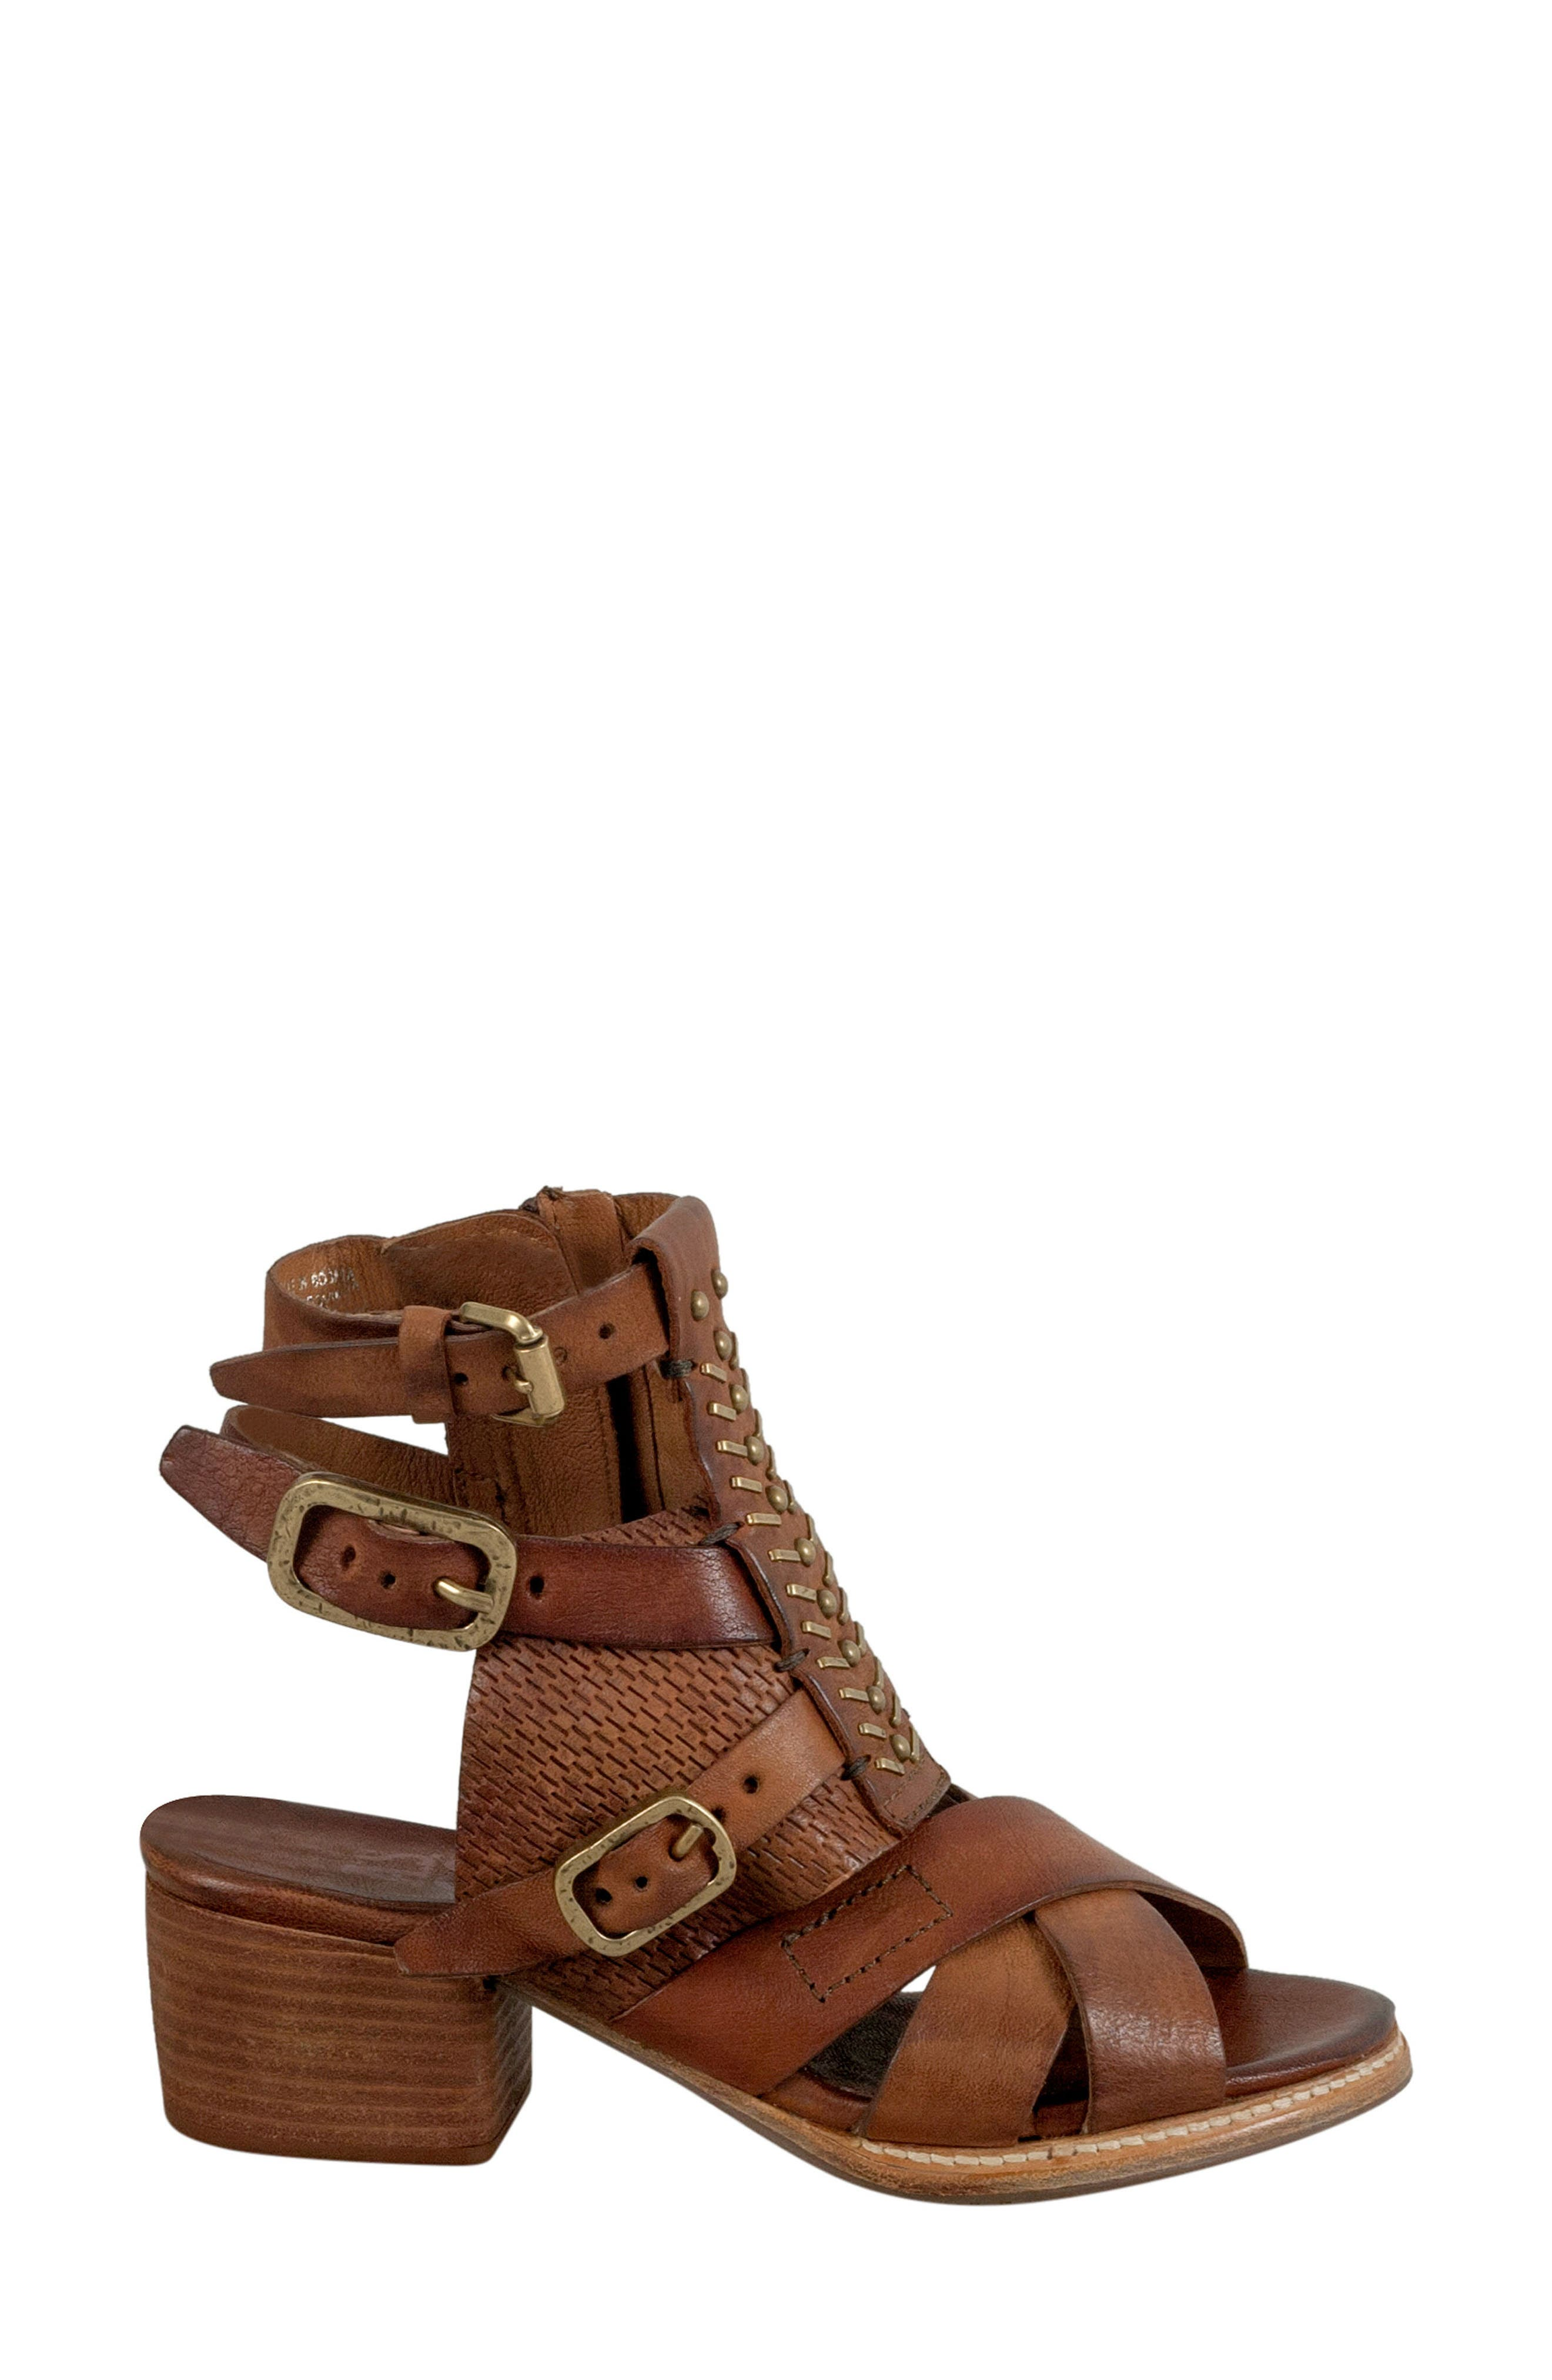 Pennie Gladiator Sandal,                             Alternate thumbnail 3, color,                             Cognac